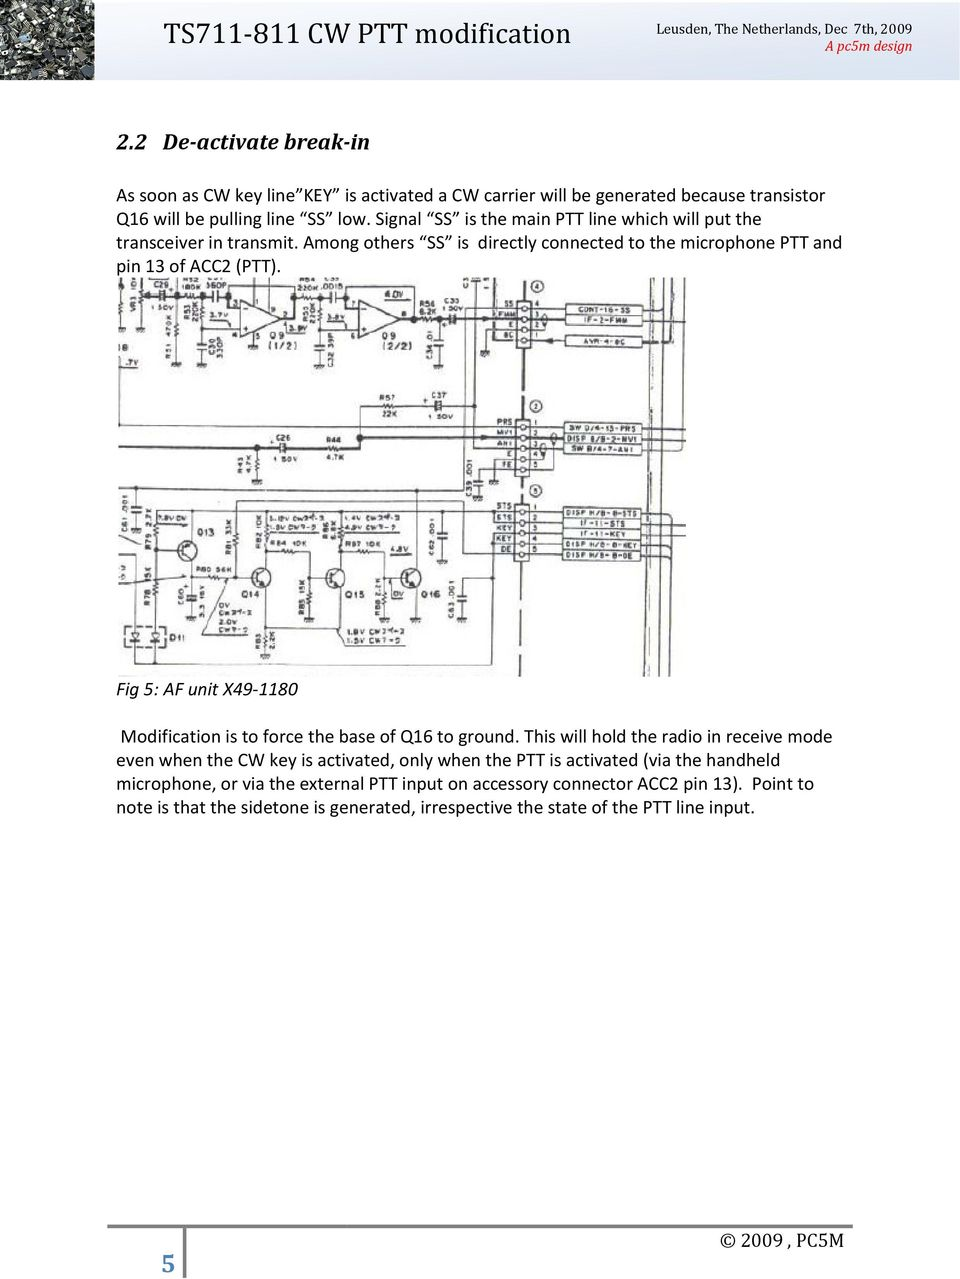 Ts711 And Ts811 Cw Ptt Modification Pdf Basic Vox Circuit Controls Signal Ss Is The Main Line Which Will Put Transceiver In Transmit Among